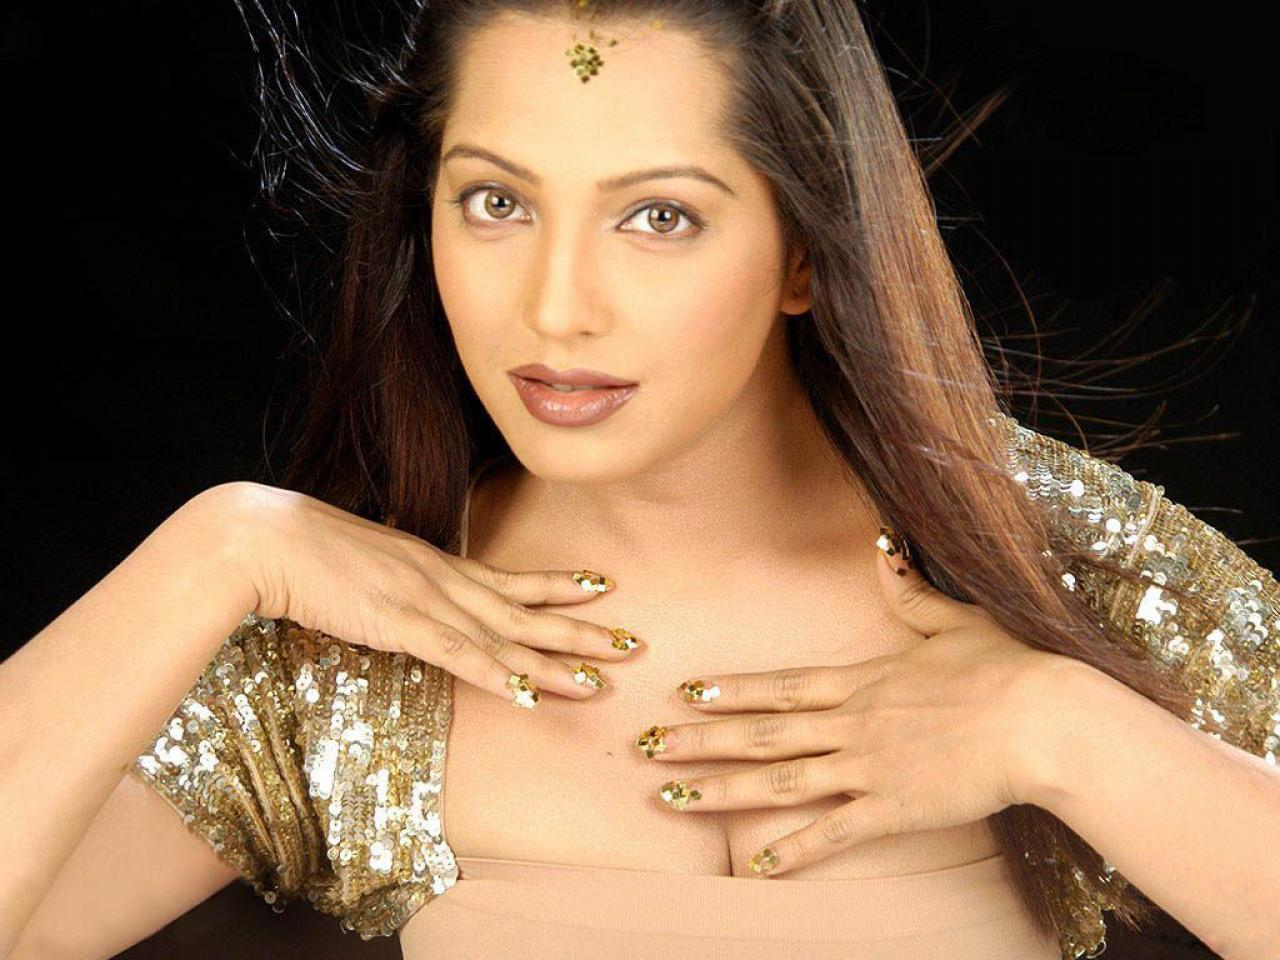 http://2.bp.blogspot.com/-Iw07W27EMNM/T9iNrE1ST2I/AAAAAAAAAXo/BGAekqSPe44/s1600/%60-actrEss-mEghna-naidu-%60-Beautiful+Girls+Wallpapers.jpg